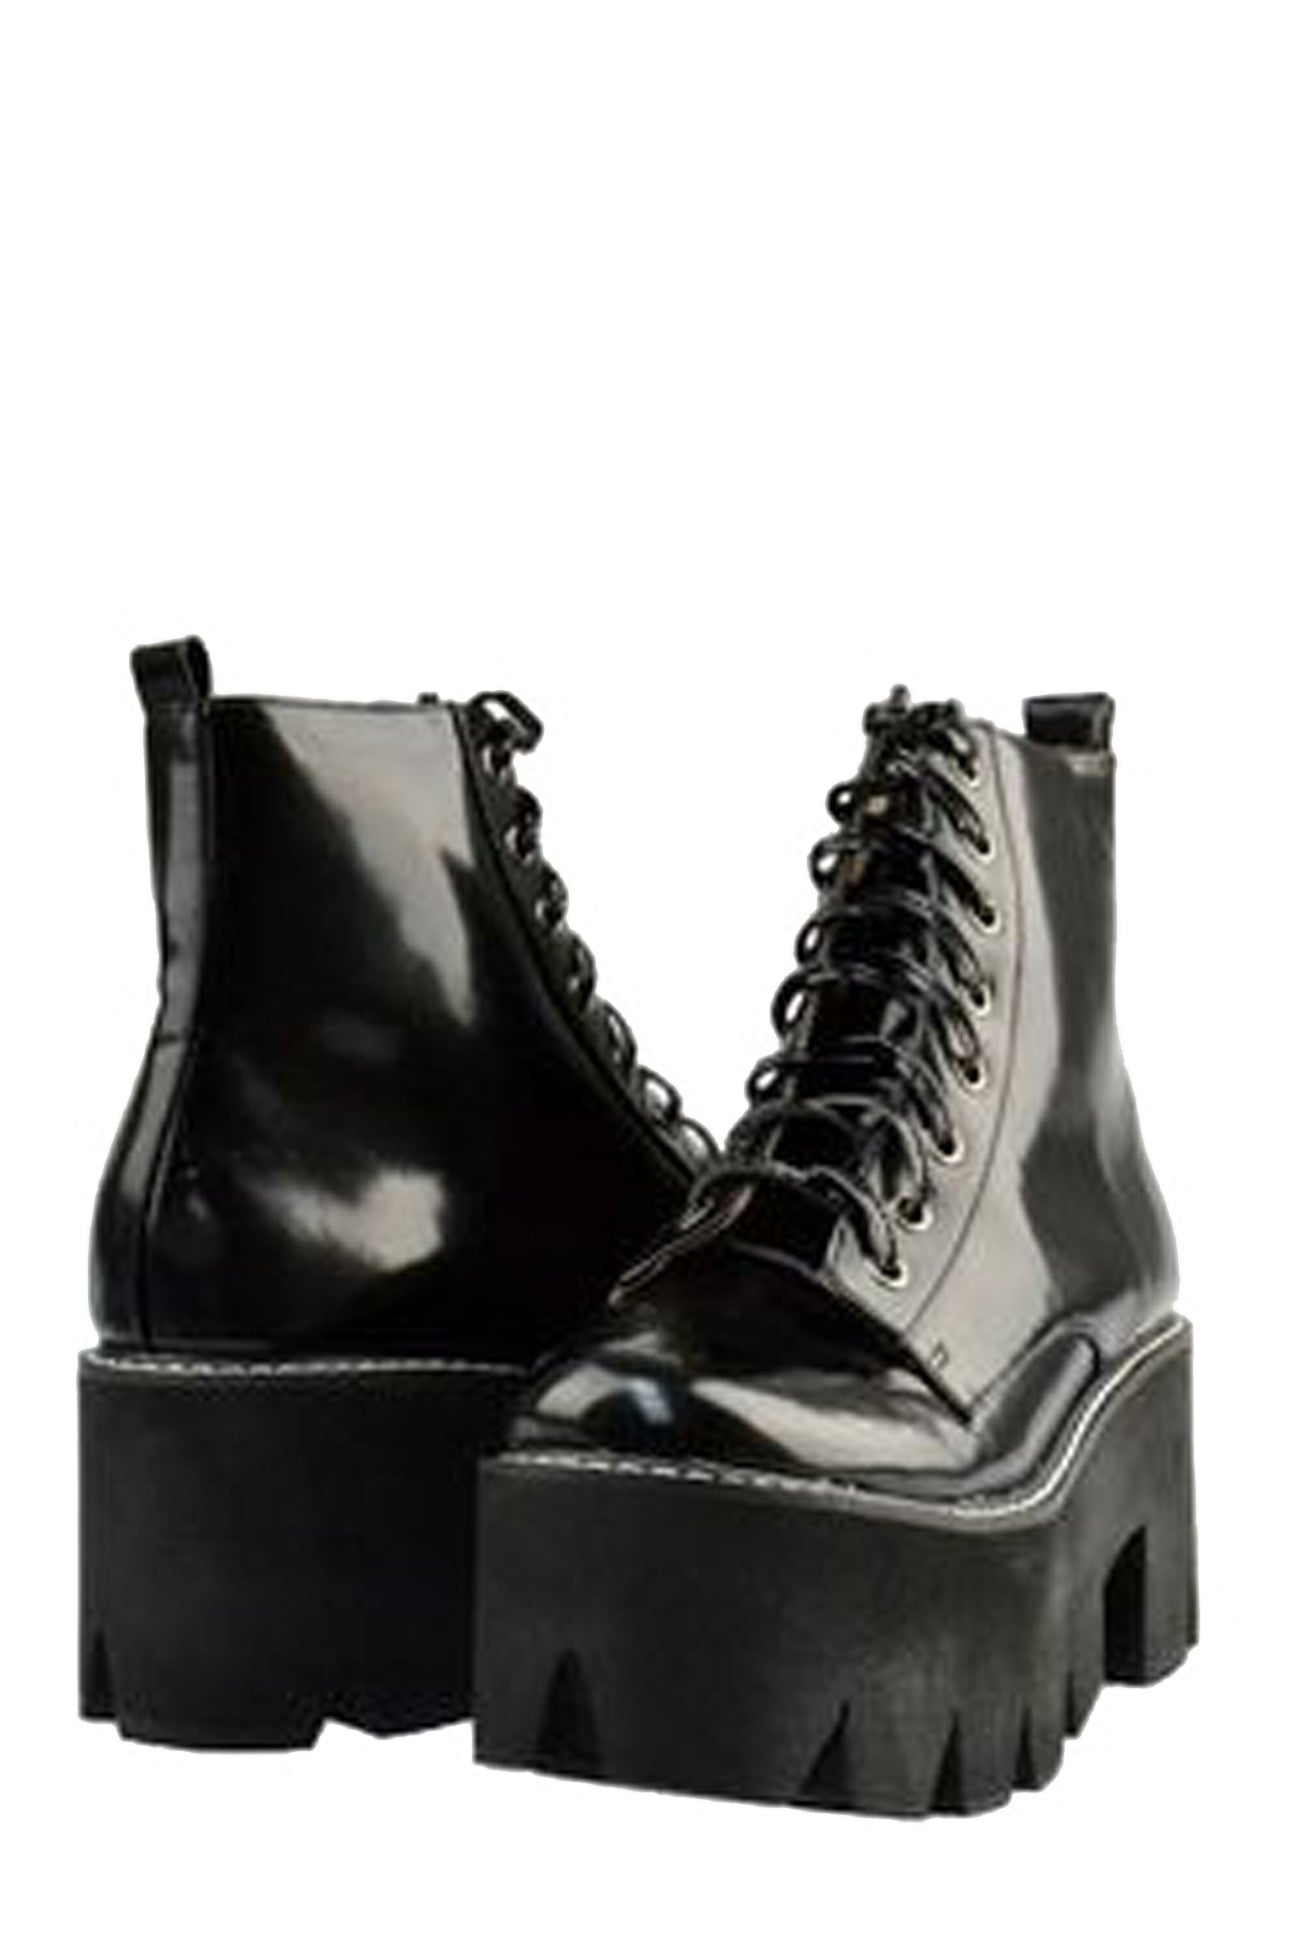 MICHIGAN LACE-UP COMBAT BOOT - MeMata  - 3